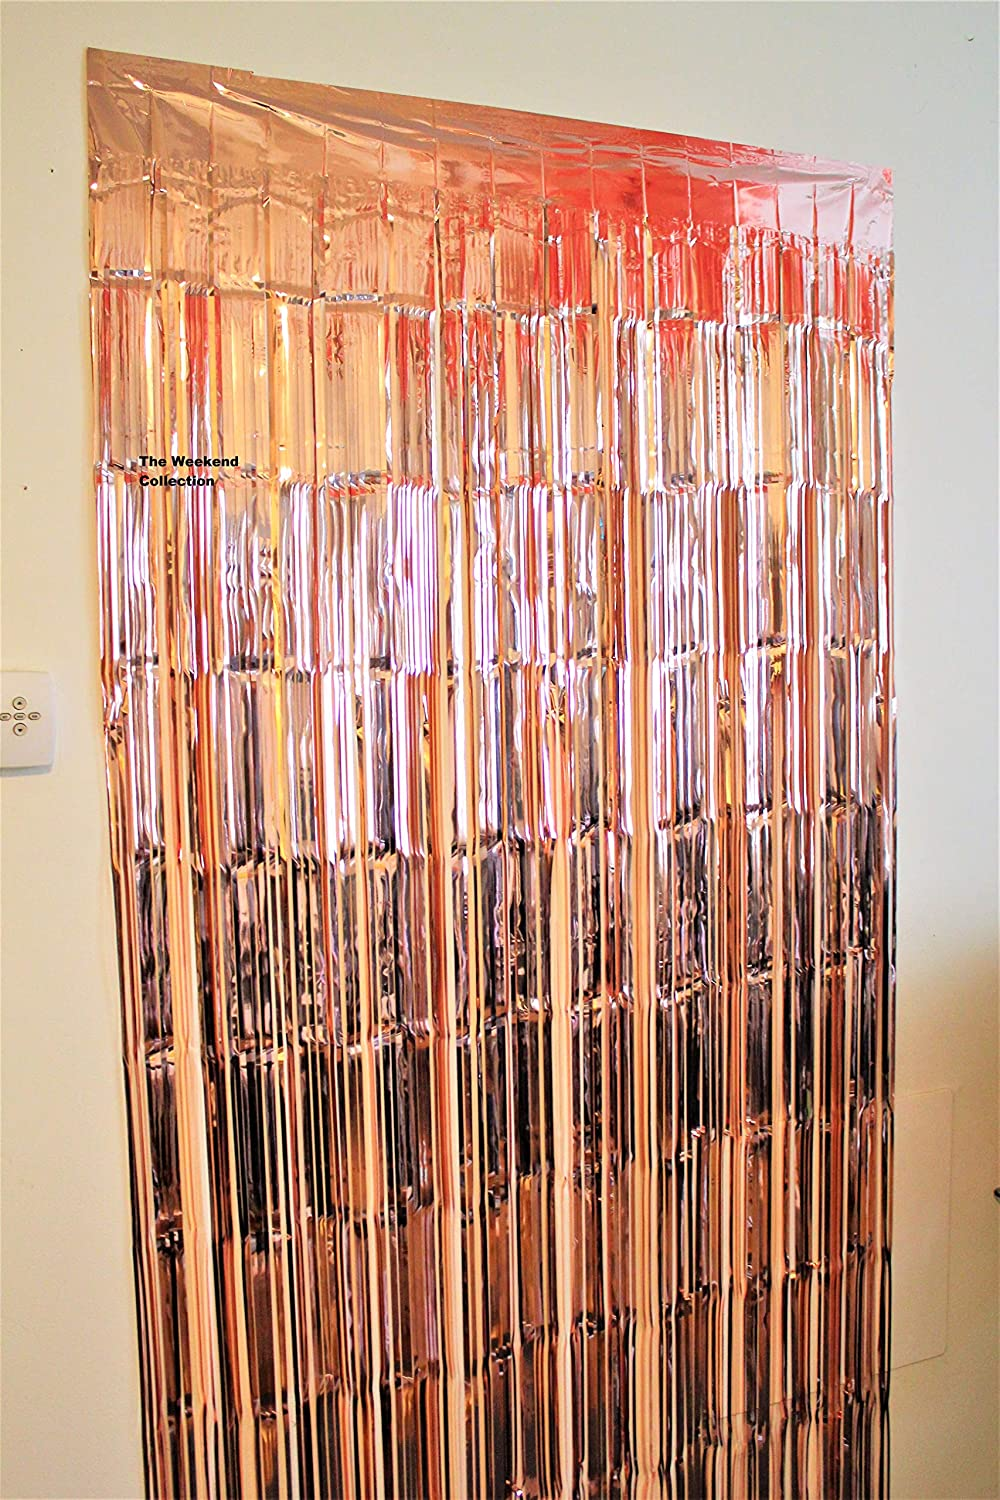 Rose Gold Confetti Balloons -18 Inch Rose Gold Balloons Rose Gold Foil Fringe Curtain |Rose Gold Glitter Confetti 50 Rose Gold Paper Straws Rose Gold Party Decorations Rose Gold Table Runner The Weekend Collection